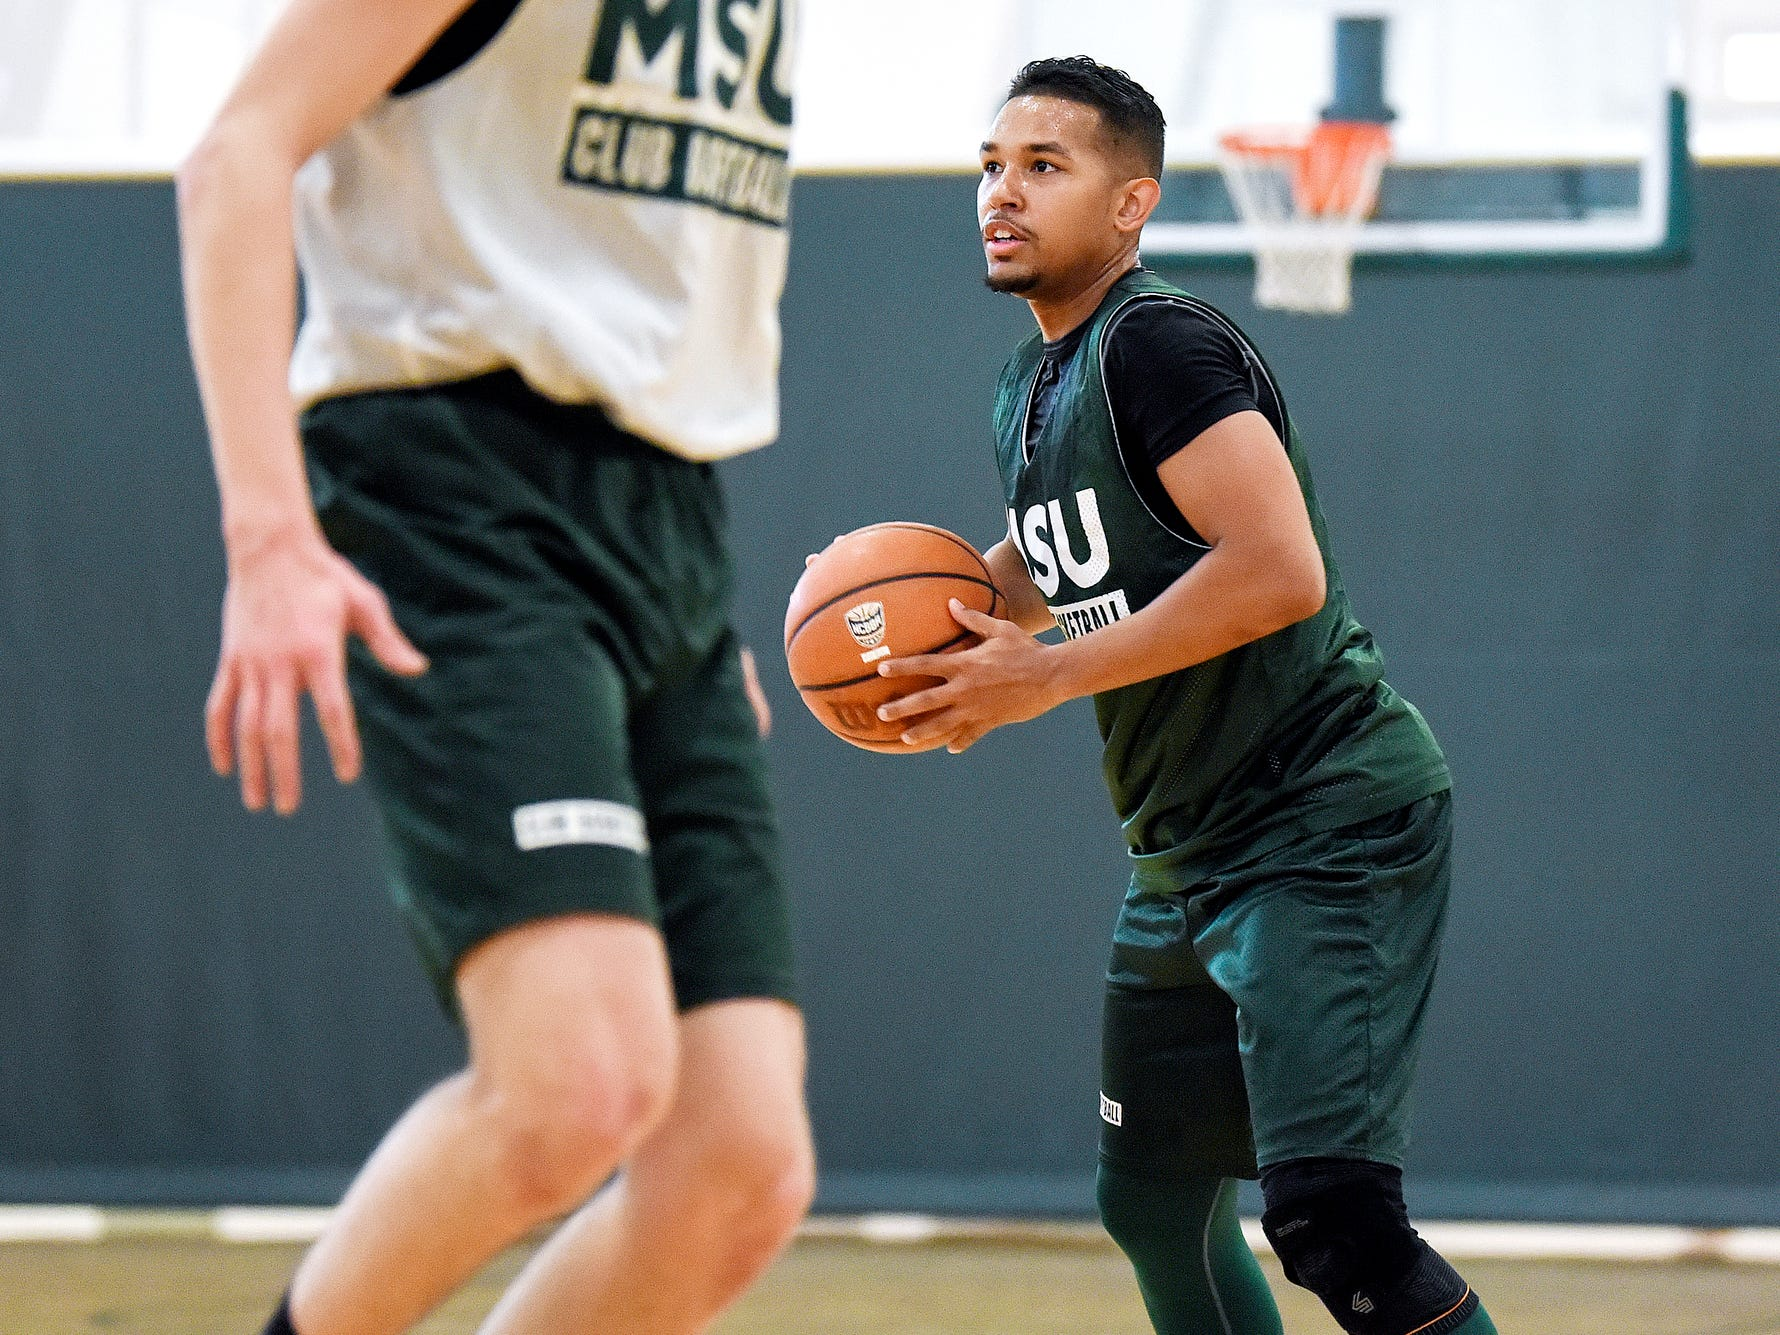 Robert Ray Jr. looks to pass the ball during a club basketball team practice on Friday, March 30, 2019, at IM Sports East on the Michigan State University campus in East Lansing.